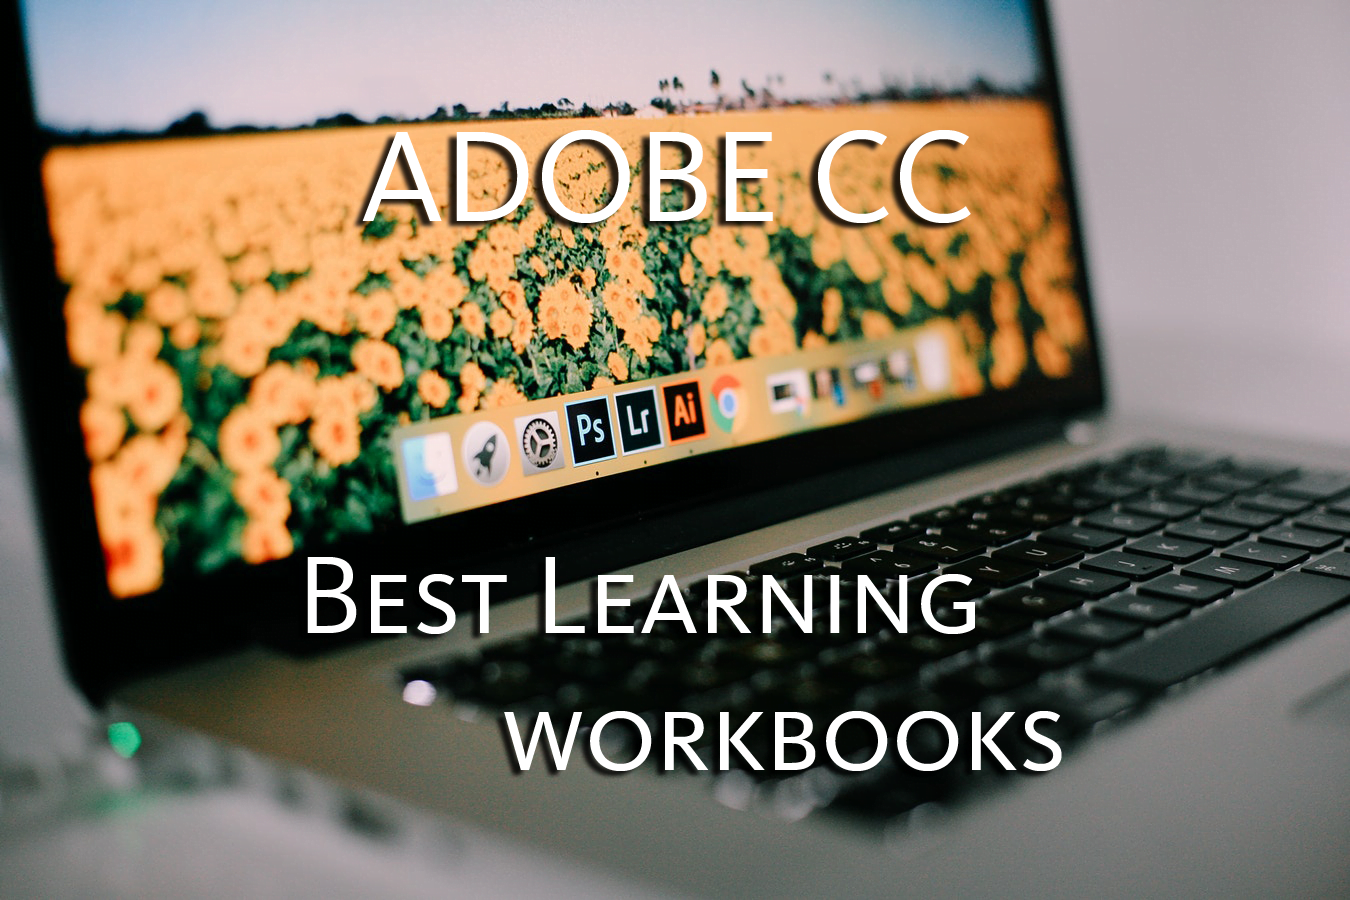 Best Learning Workbooks for Adobe CC